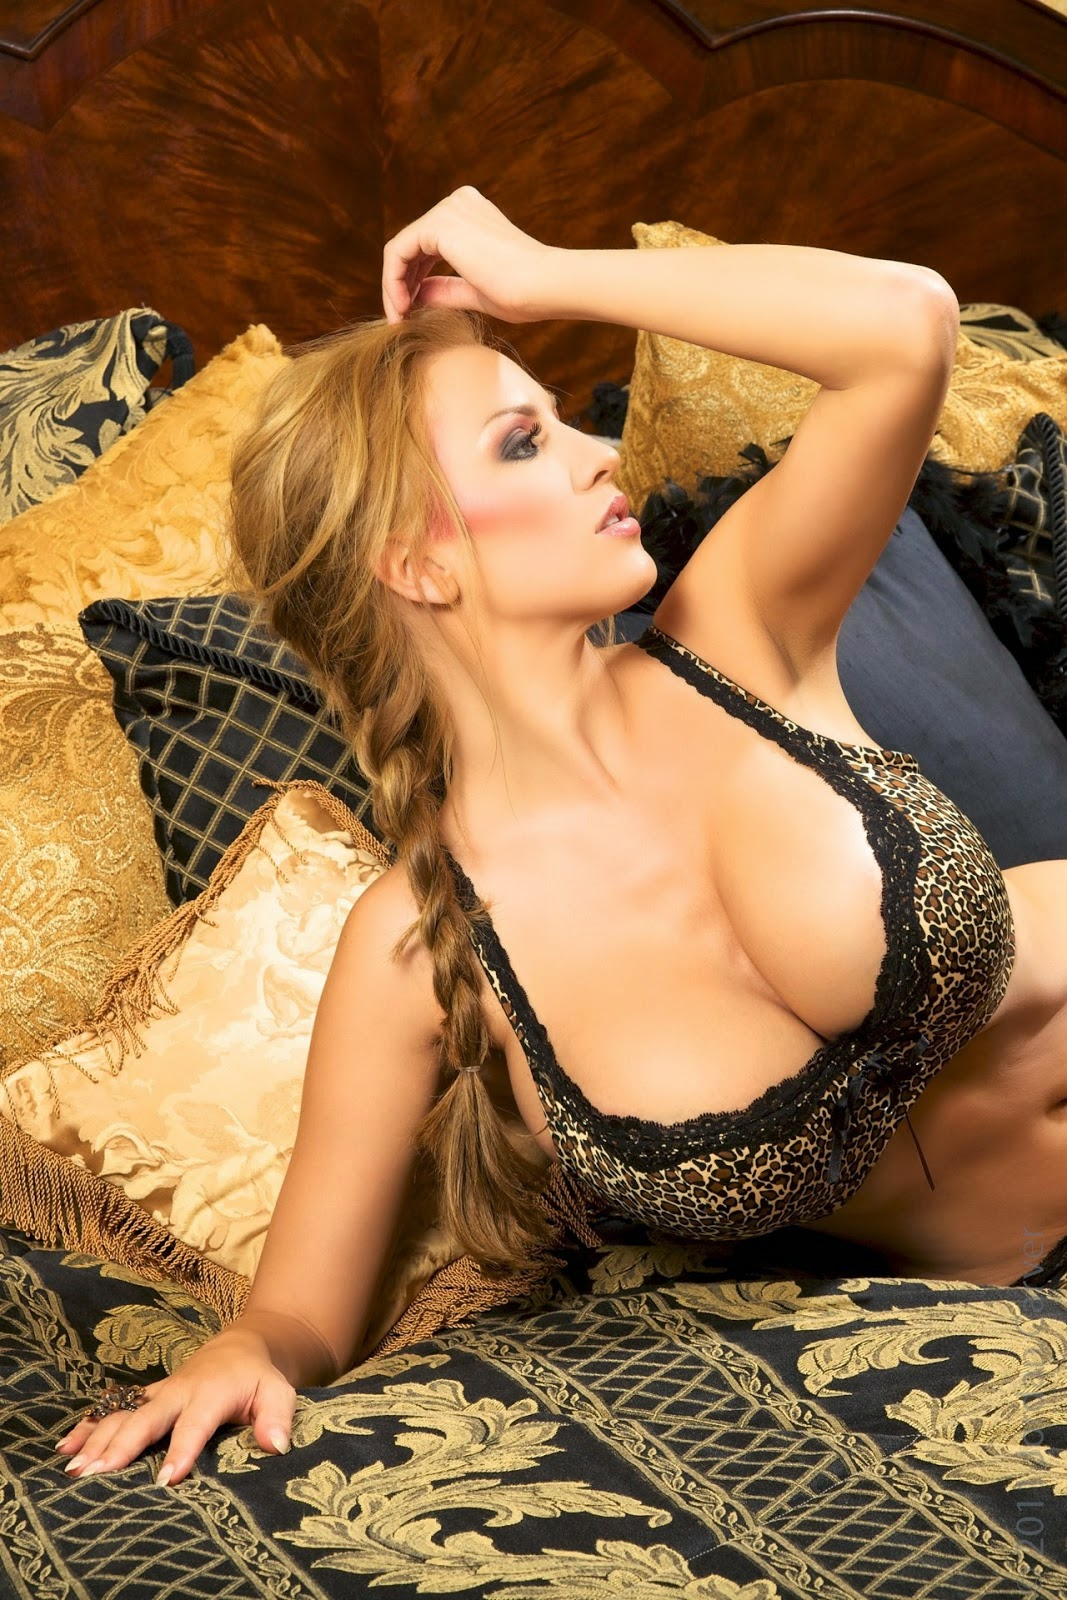 jordan carver show big boobs in bed removing wild things bra topless